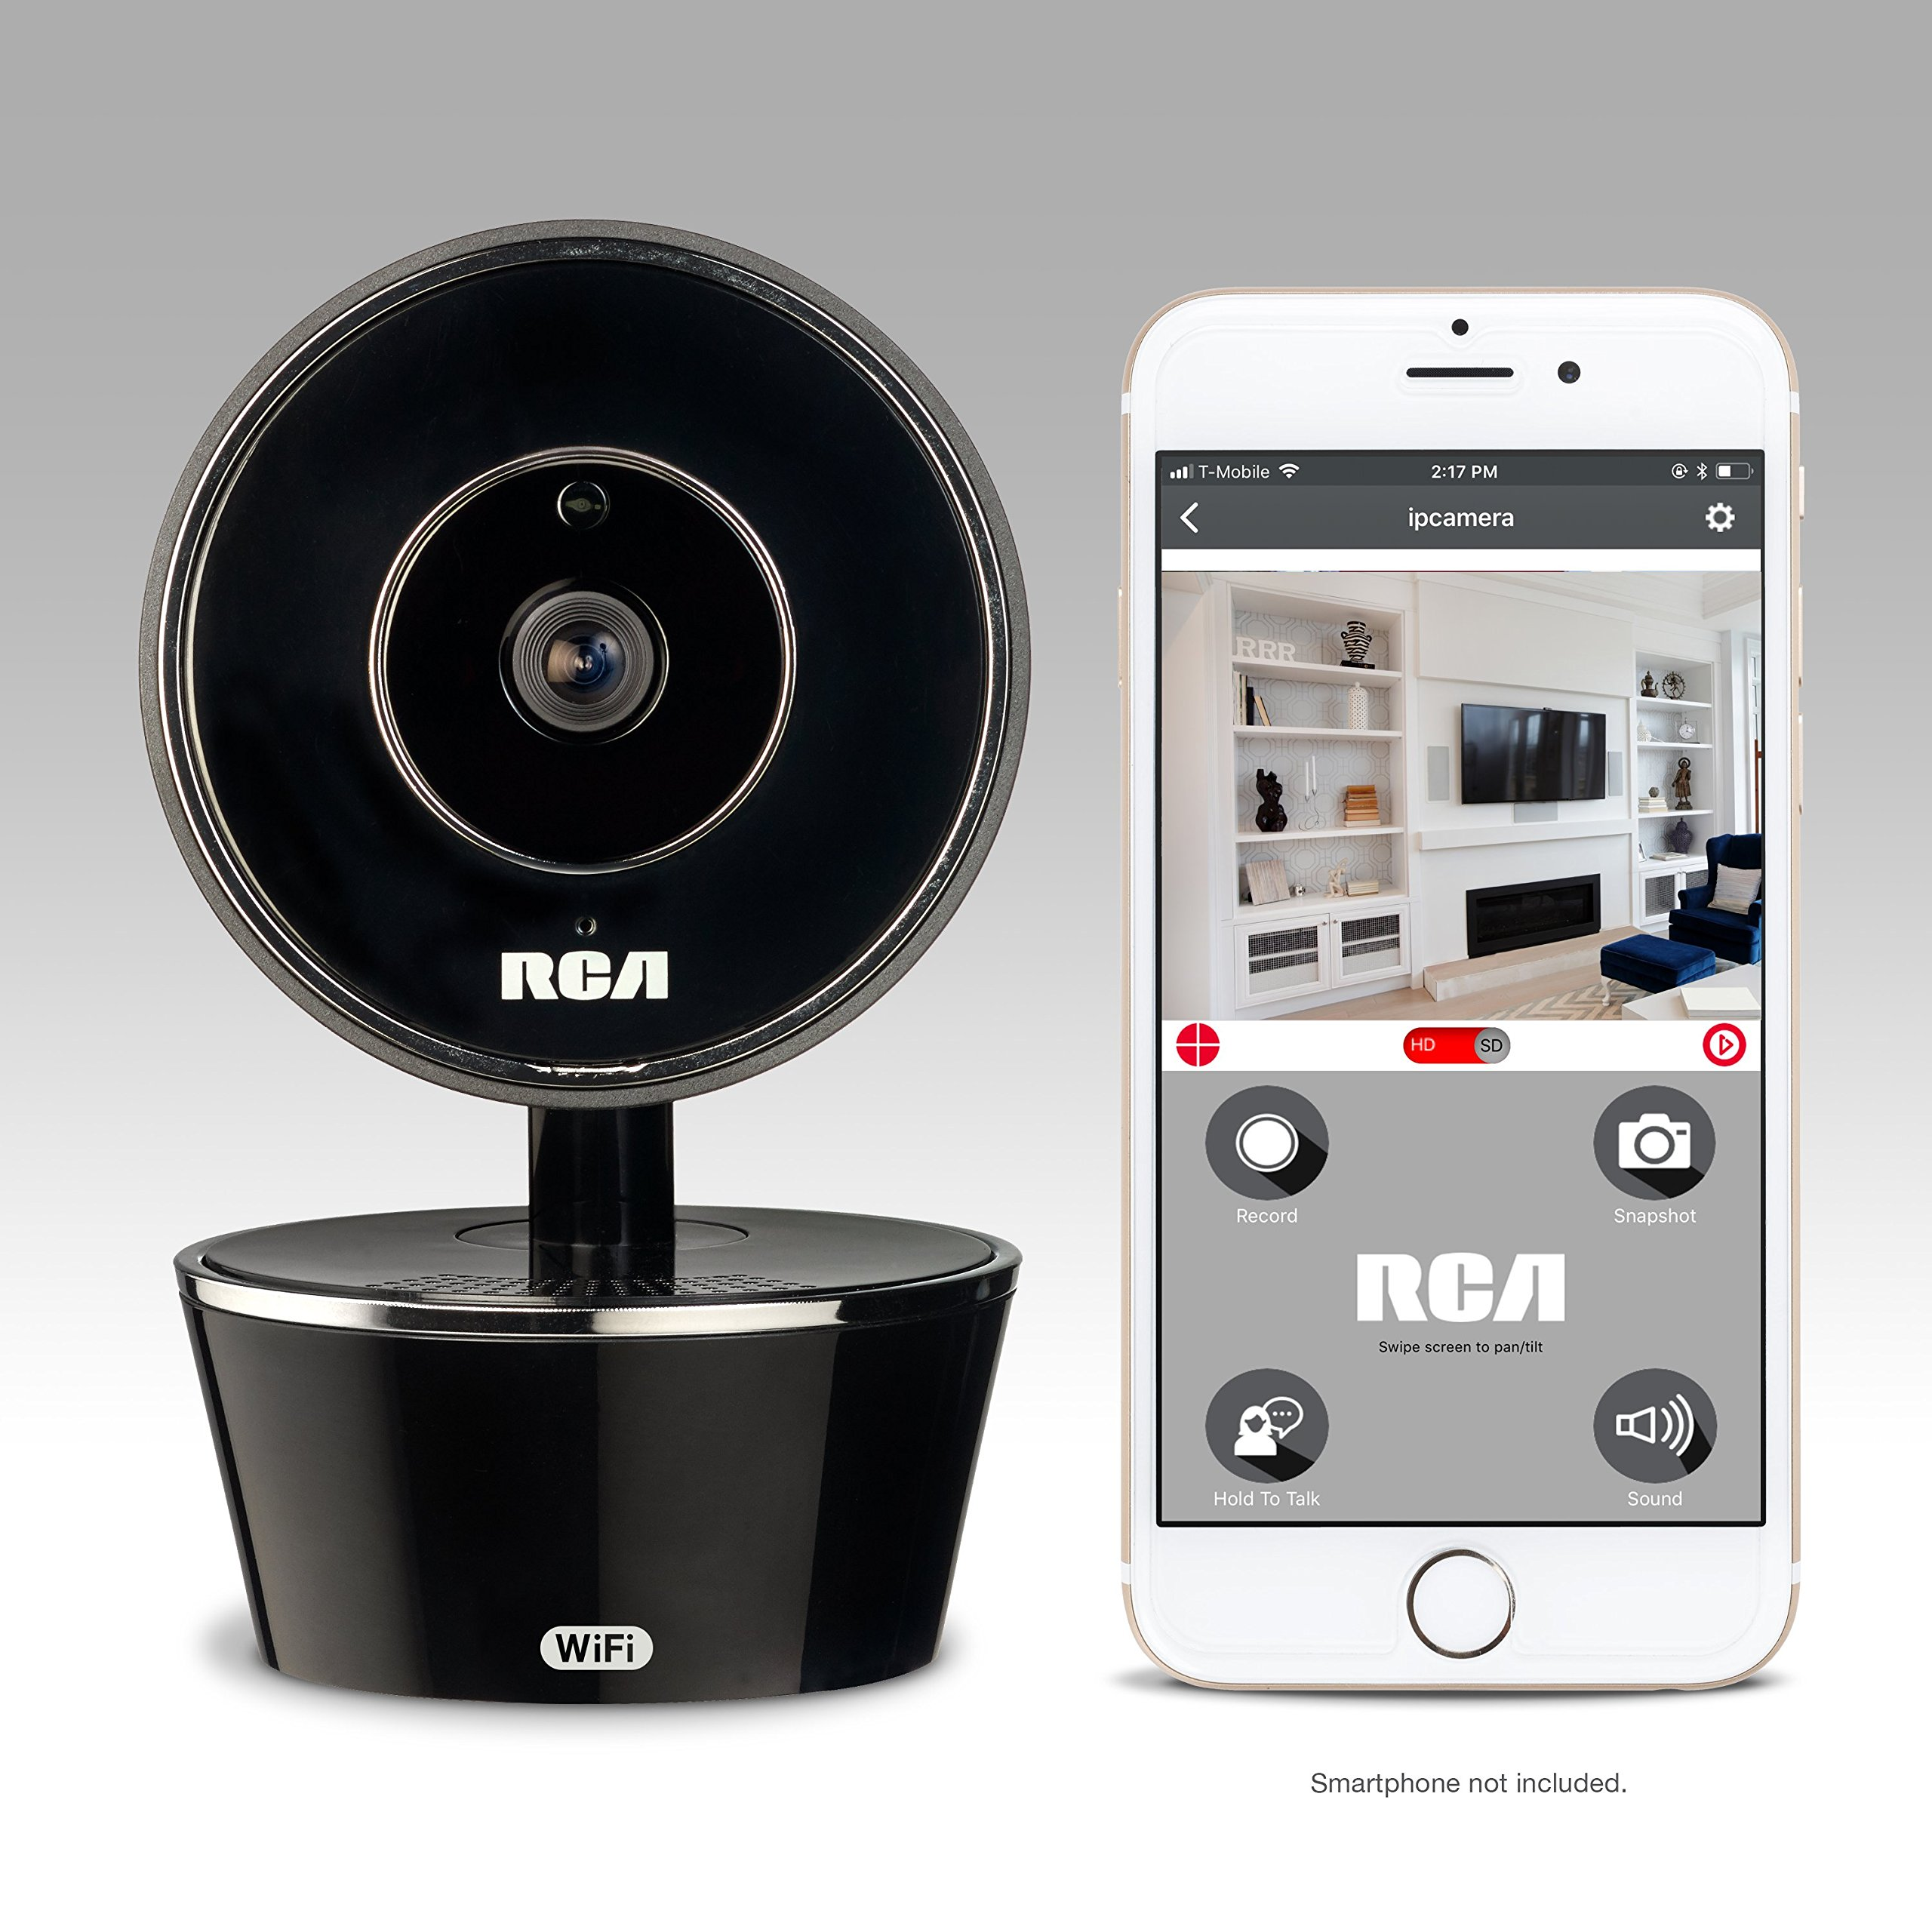 RCA WiFi Video Camera Home Security System with Motion Detection, 2 Way Talk and Night Vision. Works w/iPhone, Samsung, LG, Google or Any Smartphone/Wireless Device